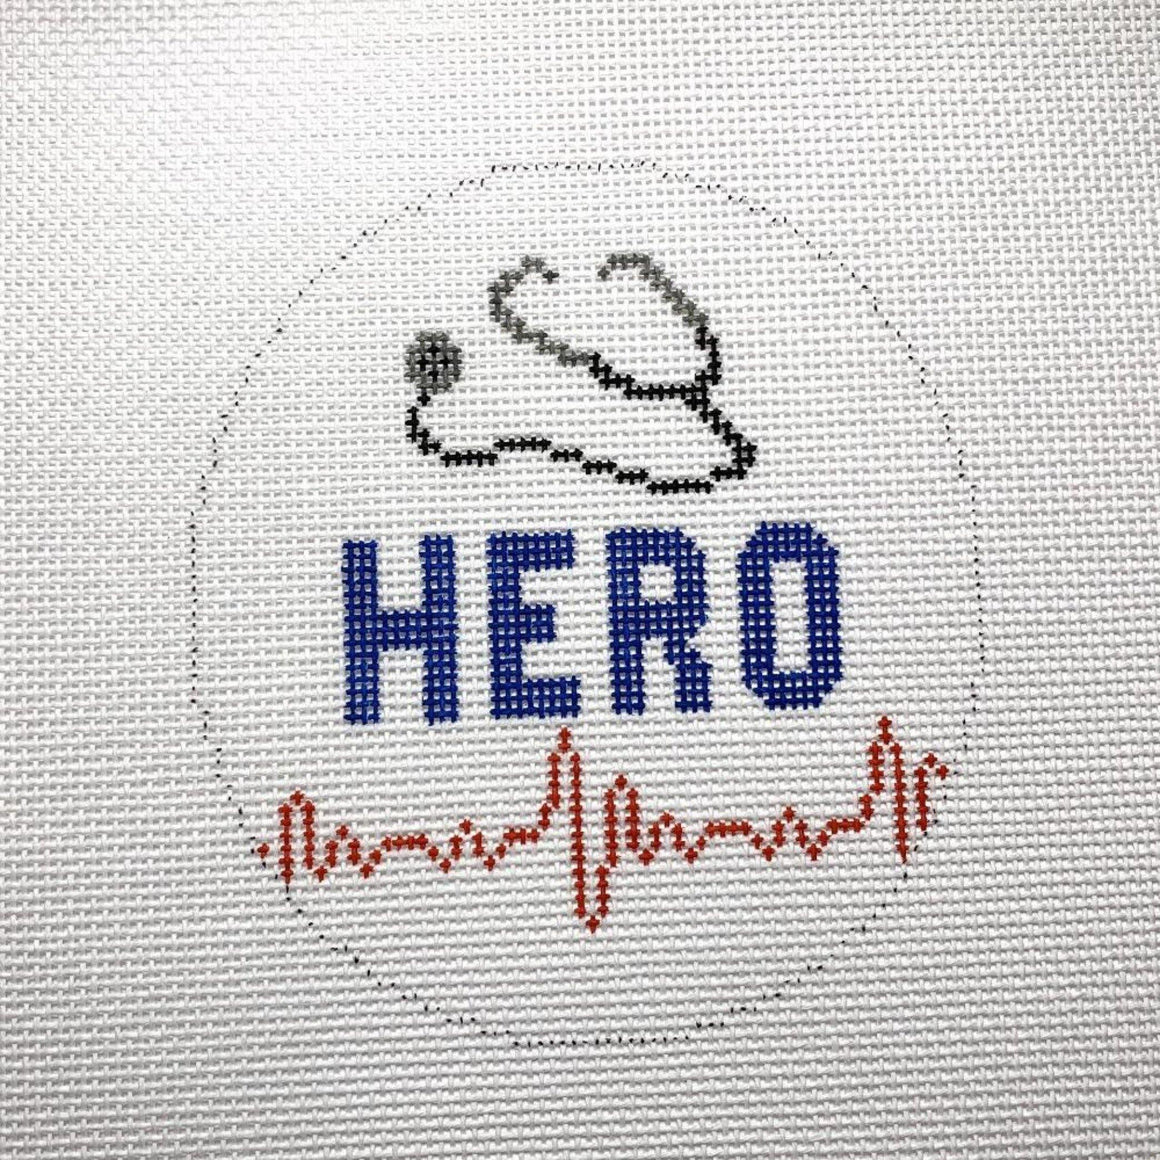 HERO Needlepoint Ornament - Needlepoint by Laura, LLC